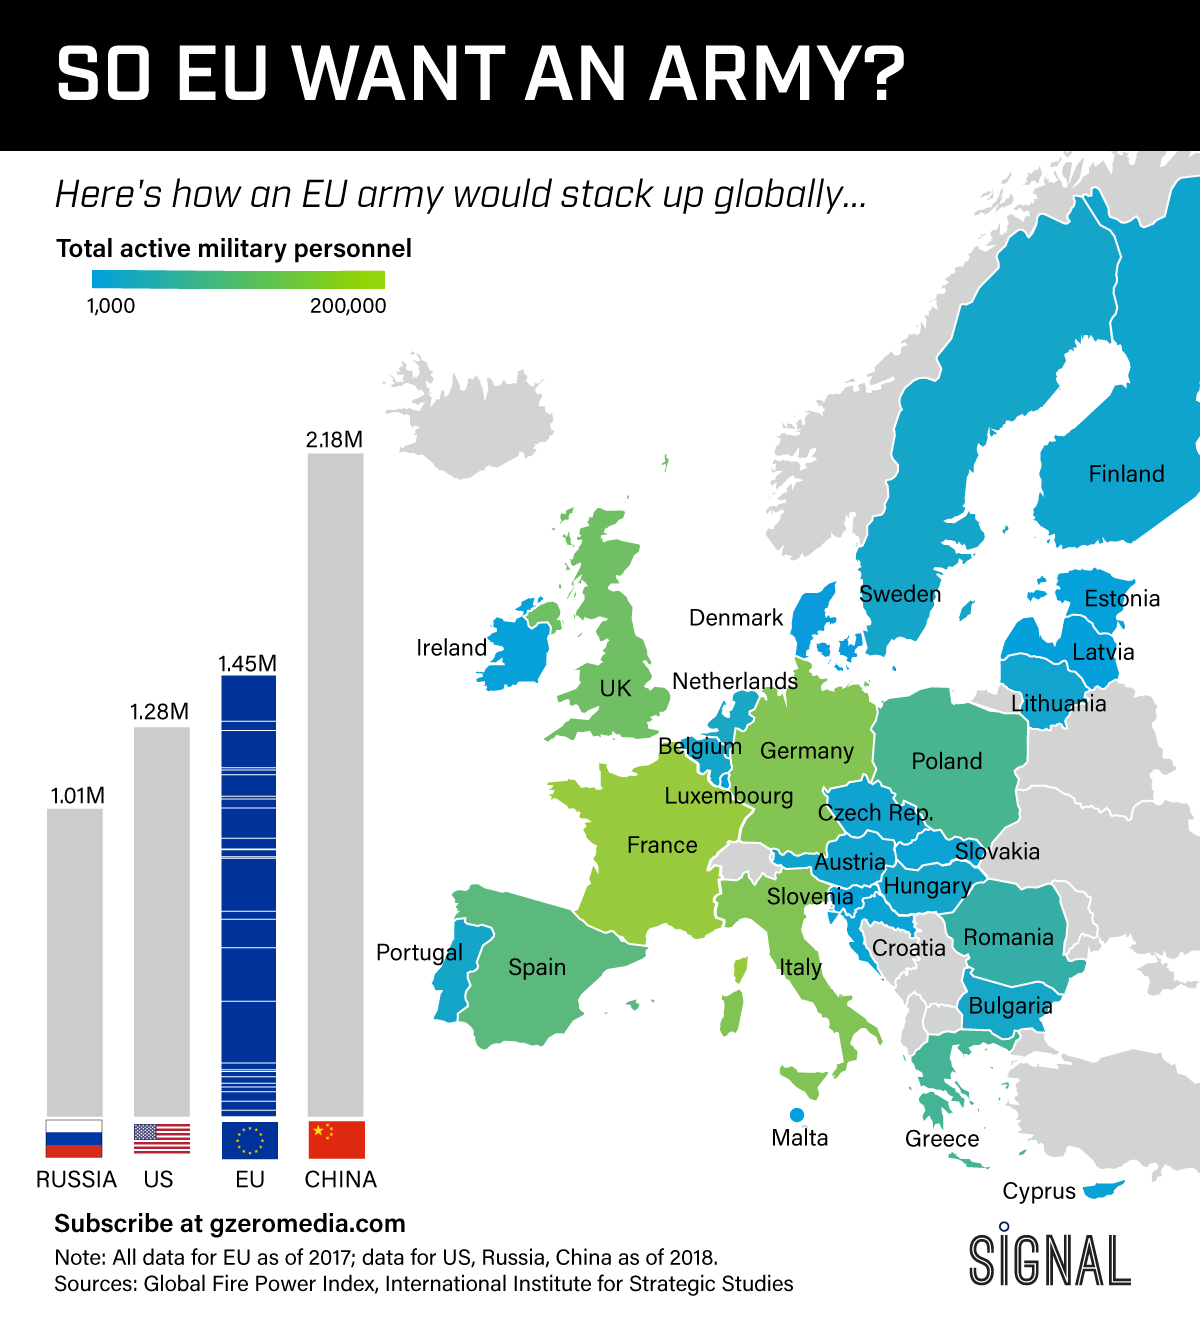 GRAPHIC TRUTH: SO EU WANT AN ARMY?